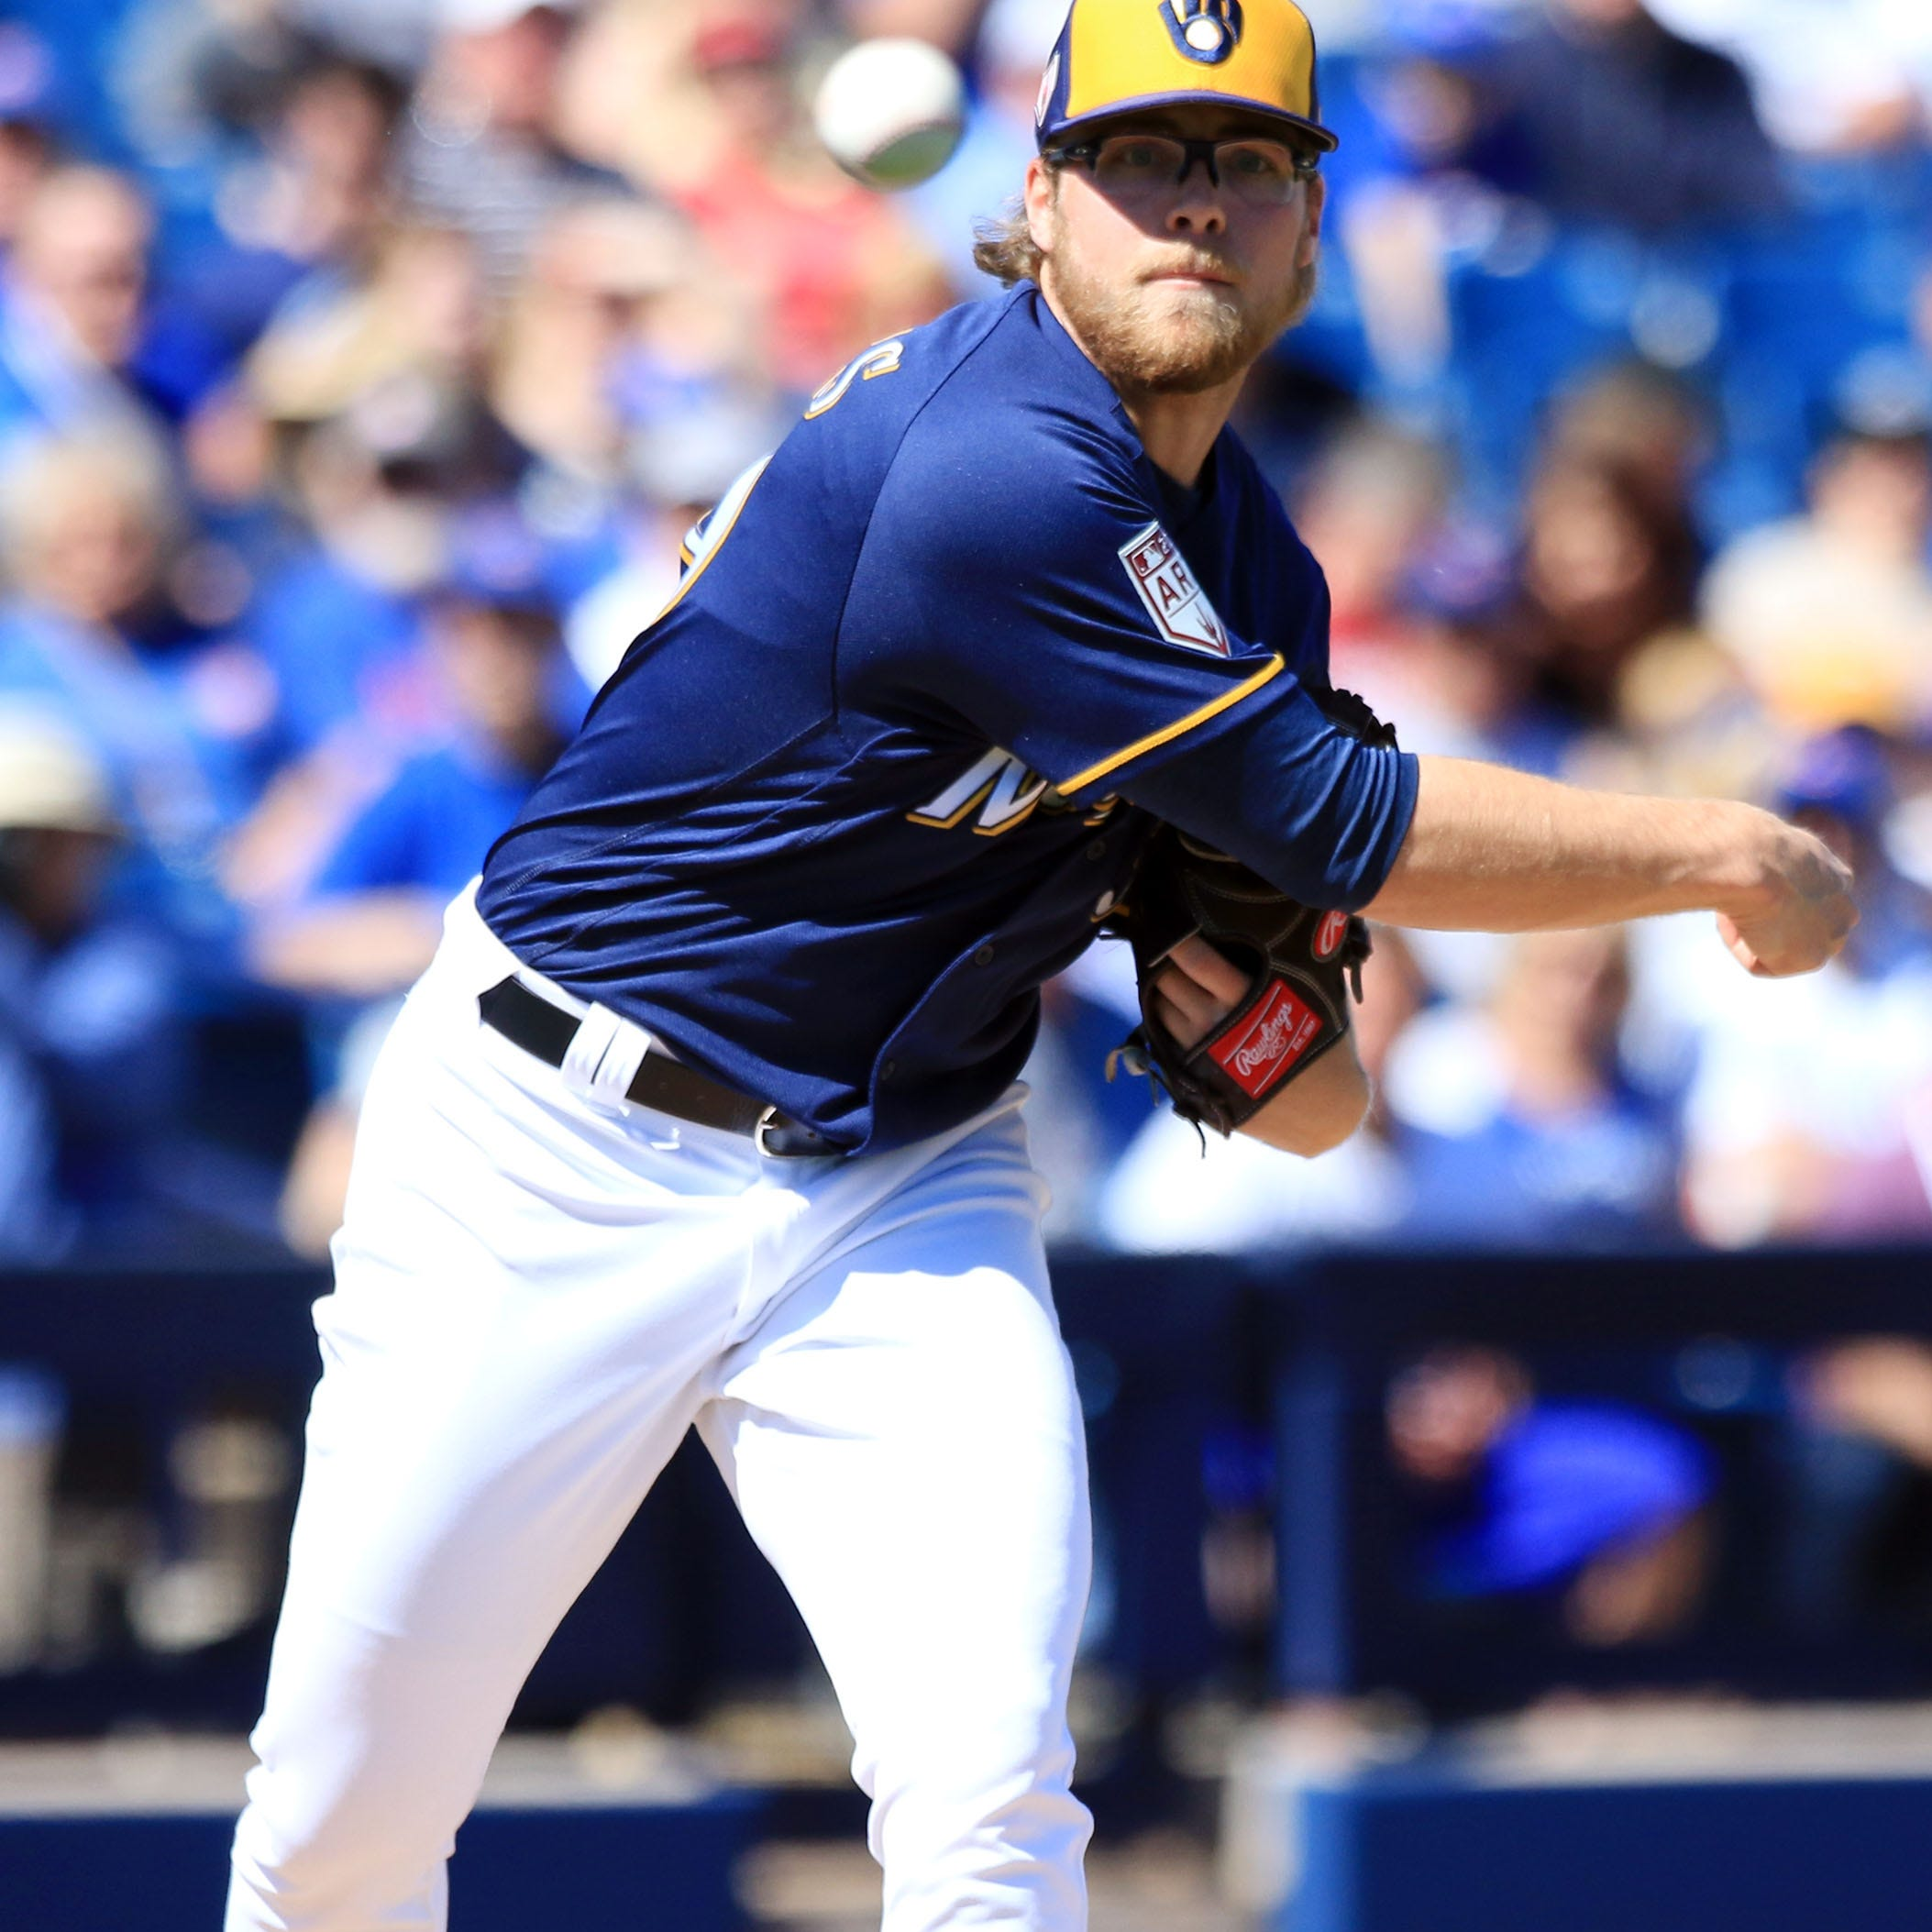 Peralta, Woodruff, Burnes and Davies fill out the Brewers' rotation, while Anderson moves to the bullpen